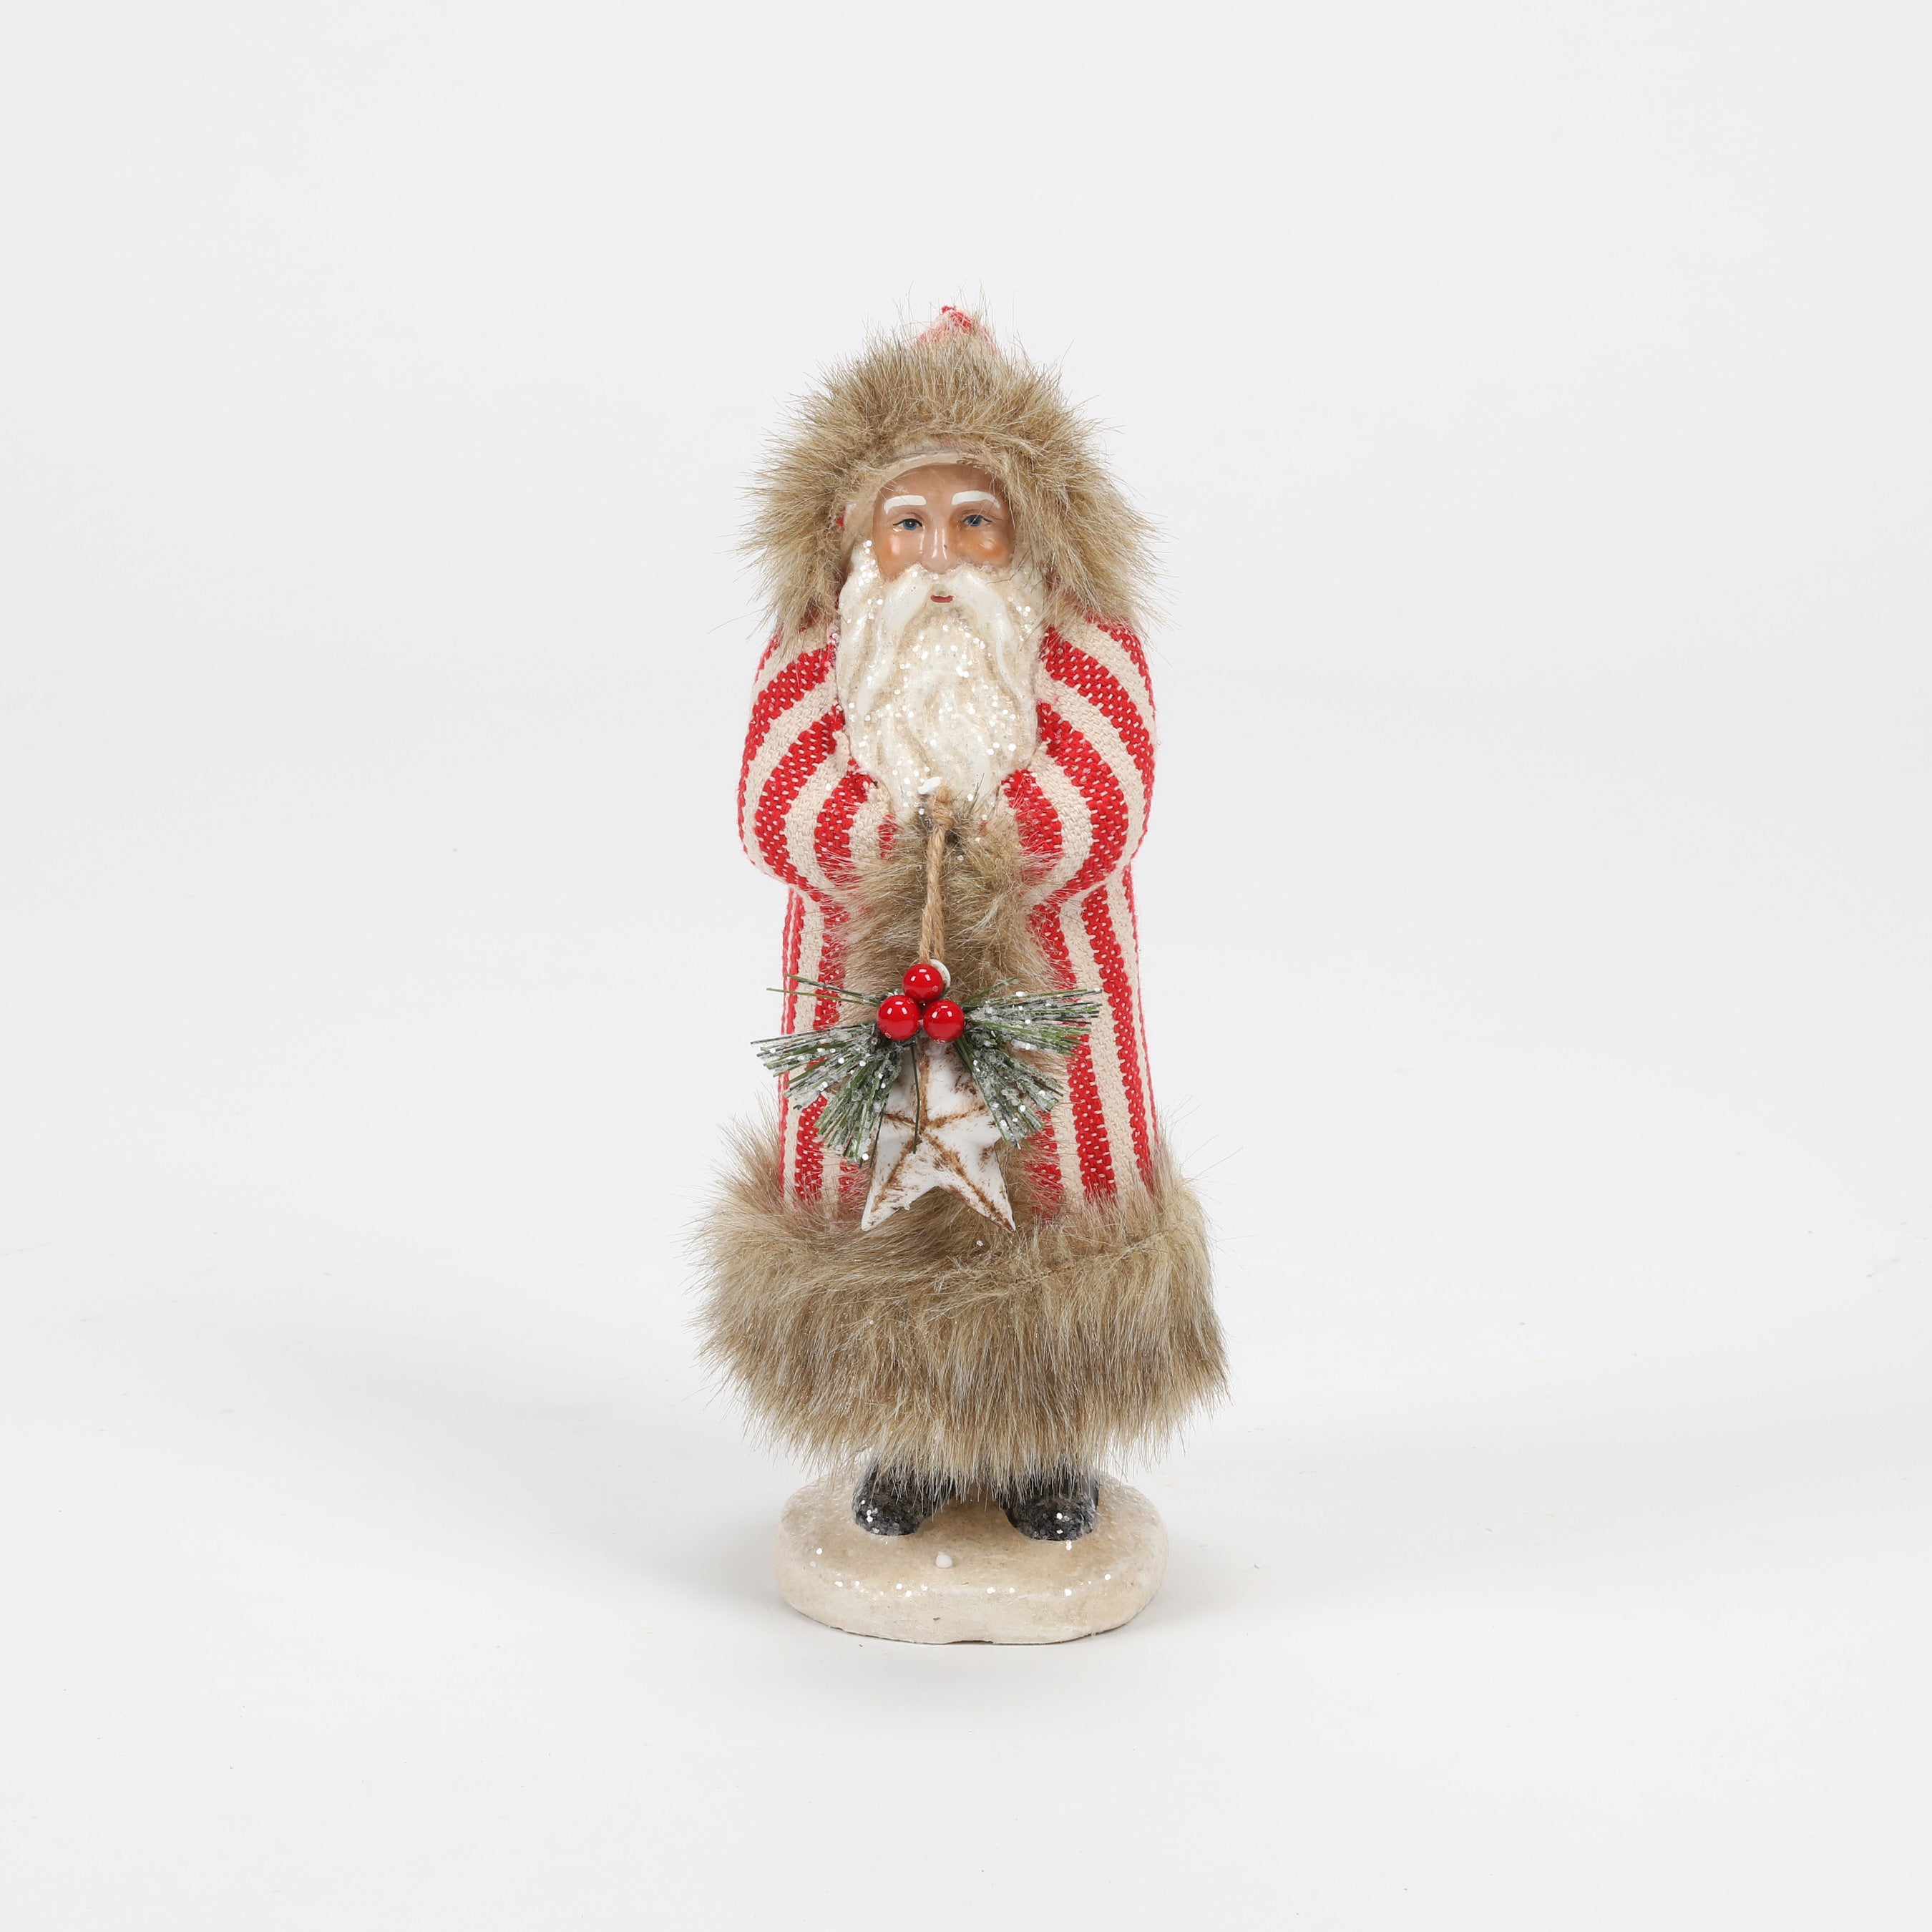 Striped Belsnickle Santa